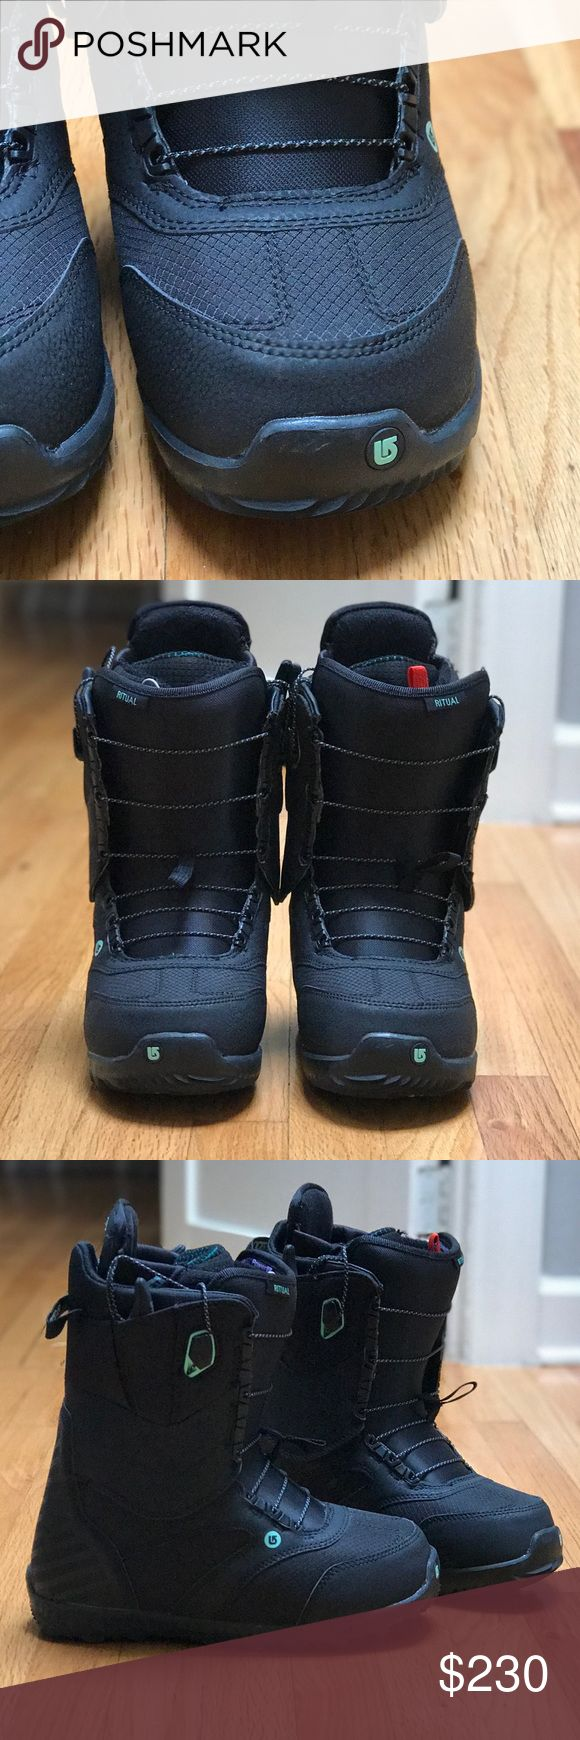 2016/2017 BURTON RITUAL BOOT *ONLY WORN 2 DAYS--LIKE NEW!** (one tiny scuff pictured above on left boot, hardly noticeable) Burton Imprint 3 Liner, Dryride Heat Cycle lining and Plush Cuff, an Aegis antimicrobial coating ensures your boots stay stank-free, DynoBite EST outsole adds a ton of grip for hiking the pipe or wandering out of bounds. High tech no longer has to mean stiff and rigid - treat yourself to comfort and all the bells and whistles with the Burton Ritual. Great mid flex boot…